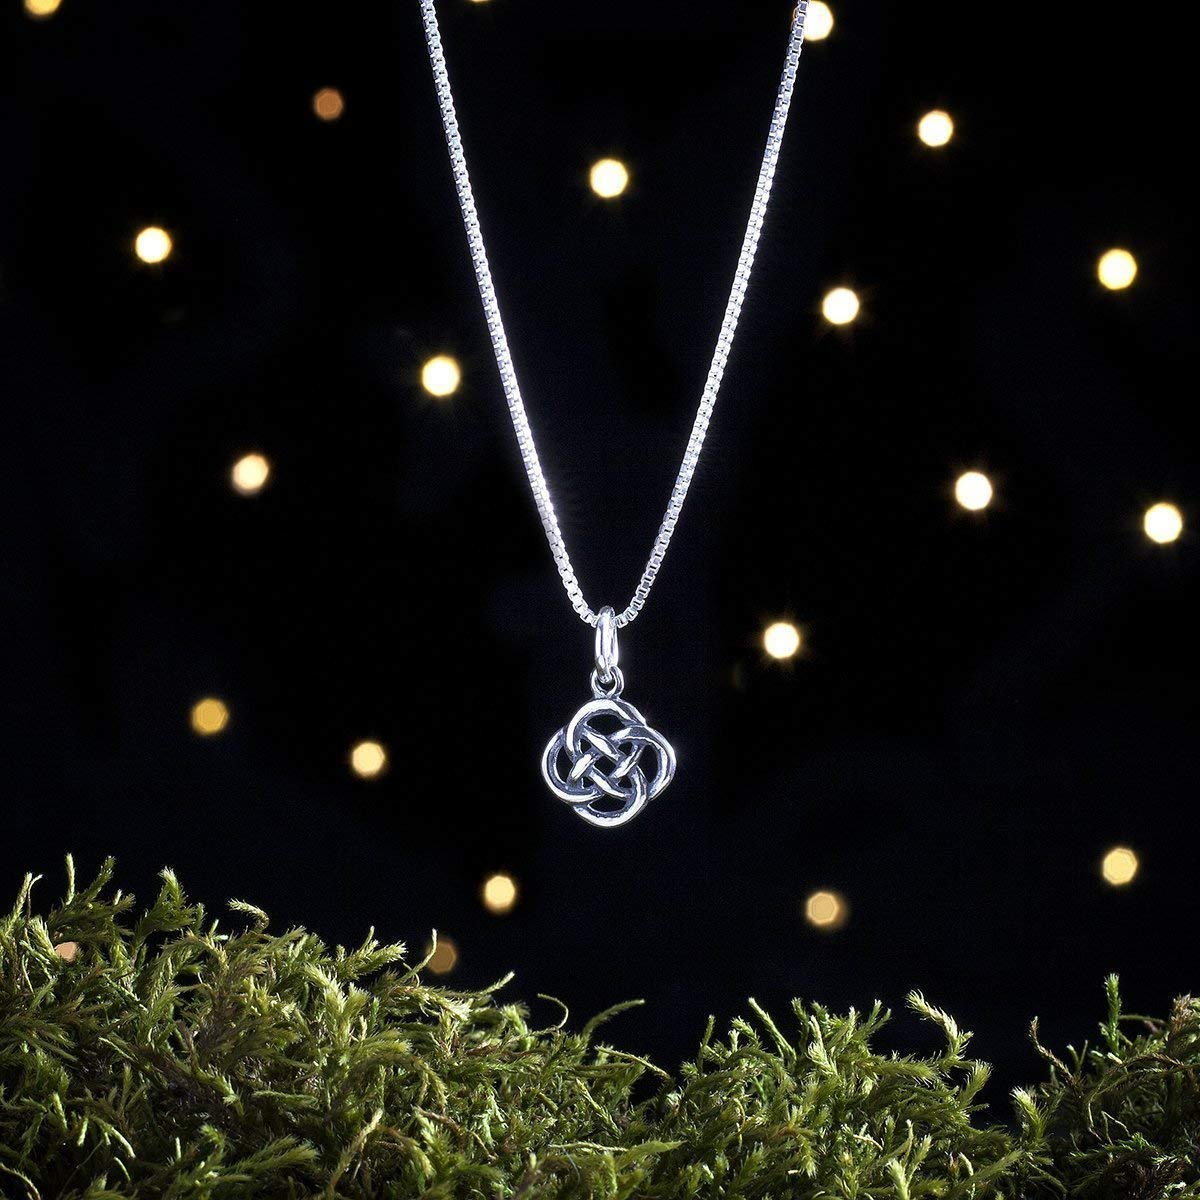 Chain Optional My ORIGINAL Charm Necklace or Earrings STERLING SILVER Tiny Celtic Trinity Love Knot